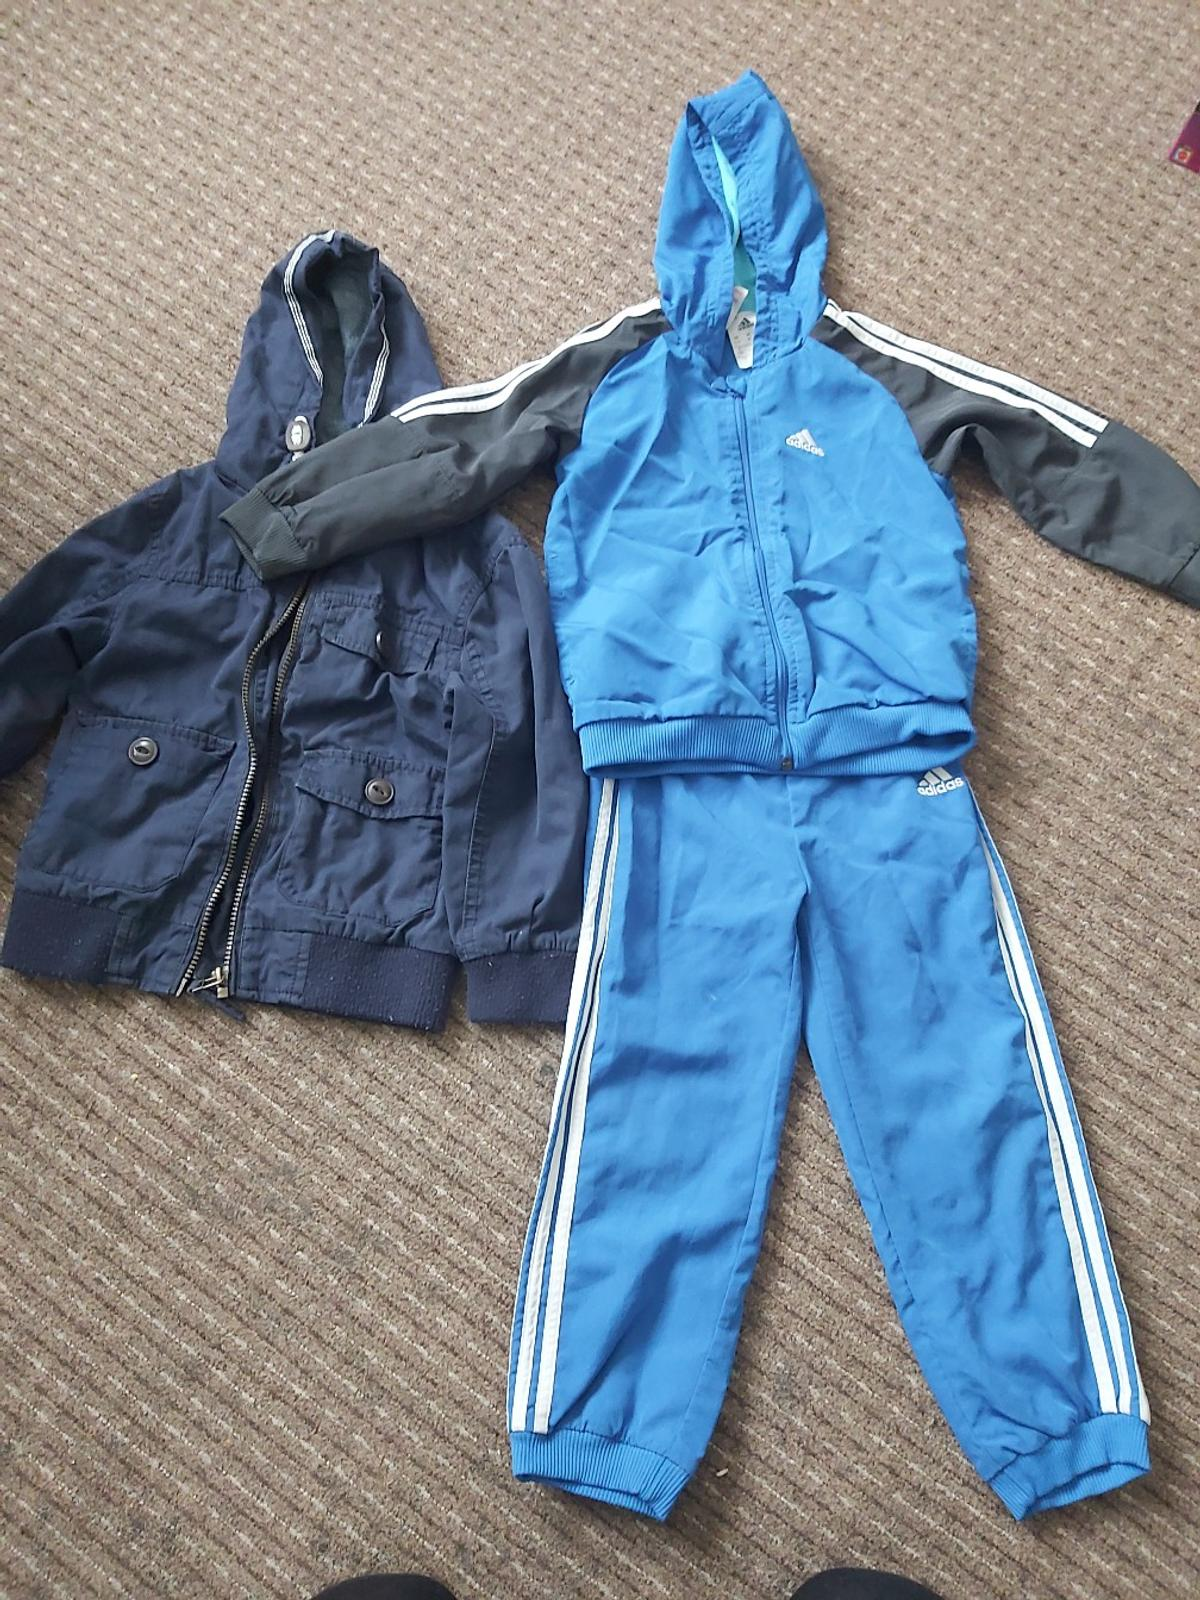 bundle of boys clothes size 3-5 years adidas tracksuit ( small mark on leg shown on picture) Jeans tshirts hoodies jogging bottoms and jacket. Most things only worn once or twice still plenty of wear left in them all. smoke free and pet free home. can deliver locally.